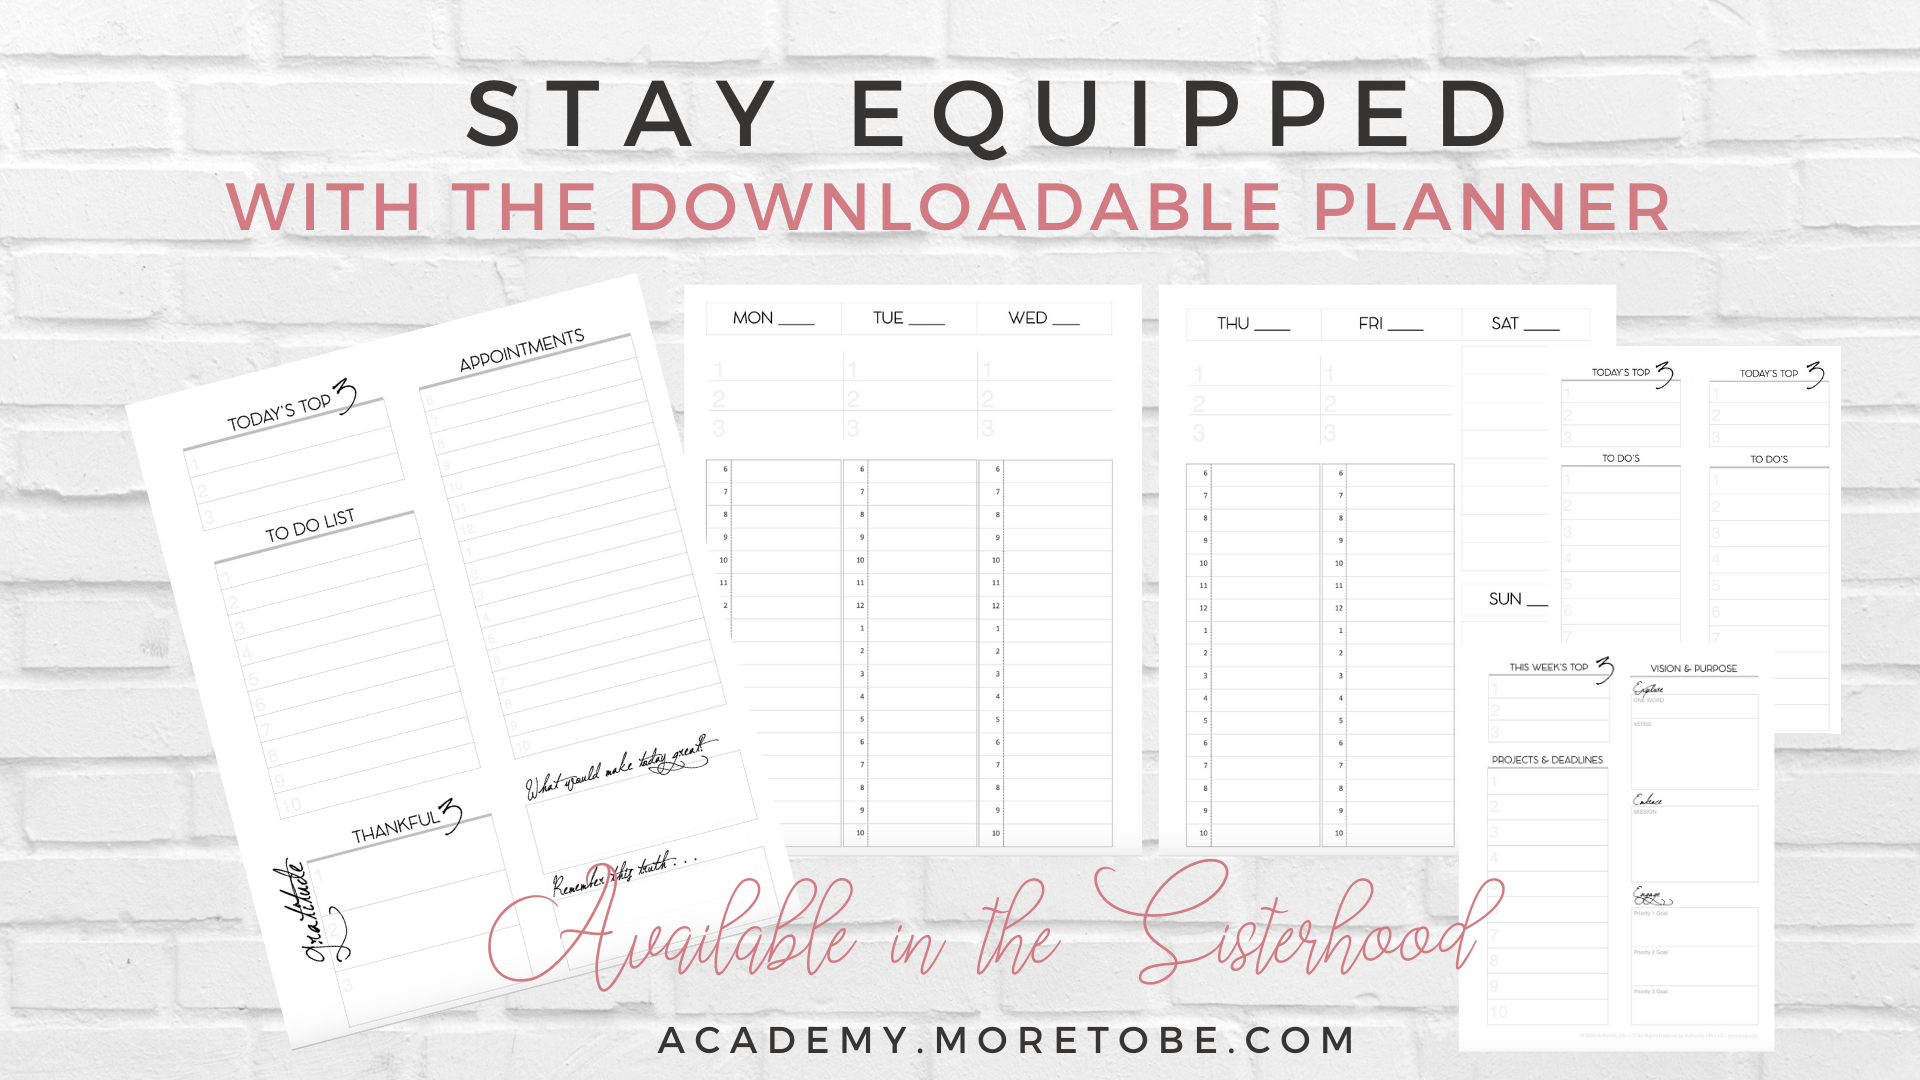 Equipped Downloadable Planner